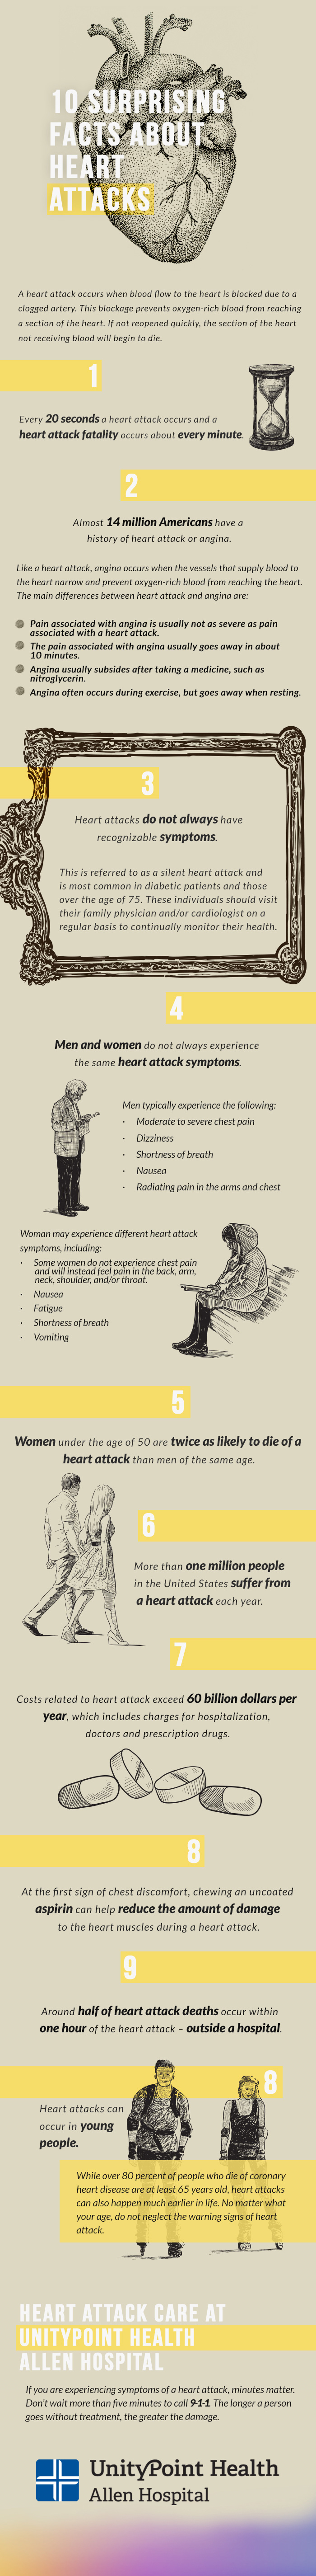 hear attack infographic cardiology waterloo